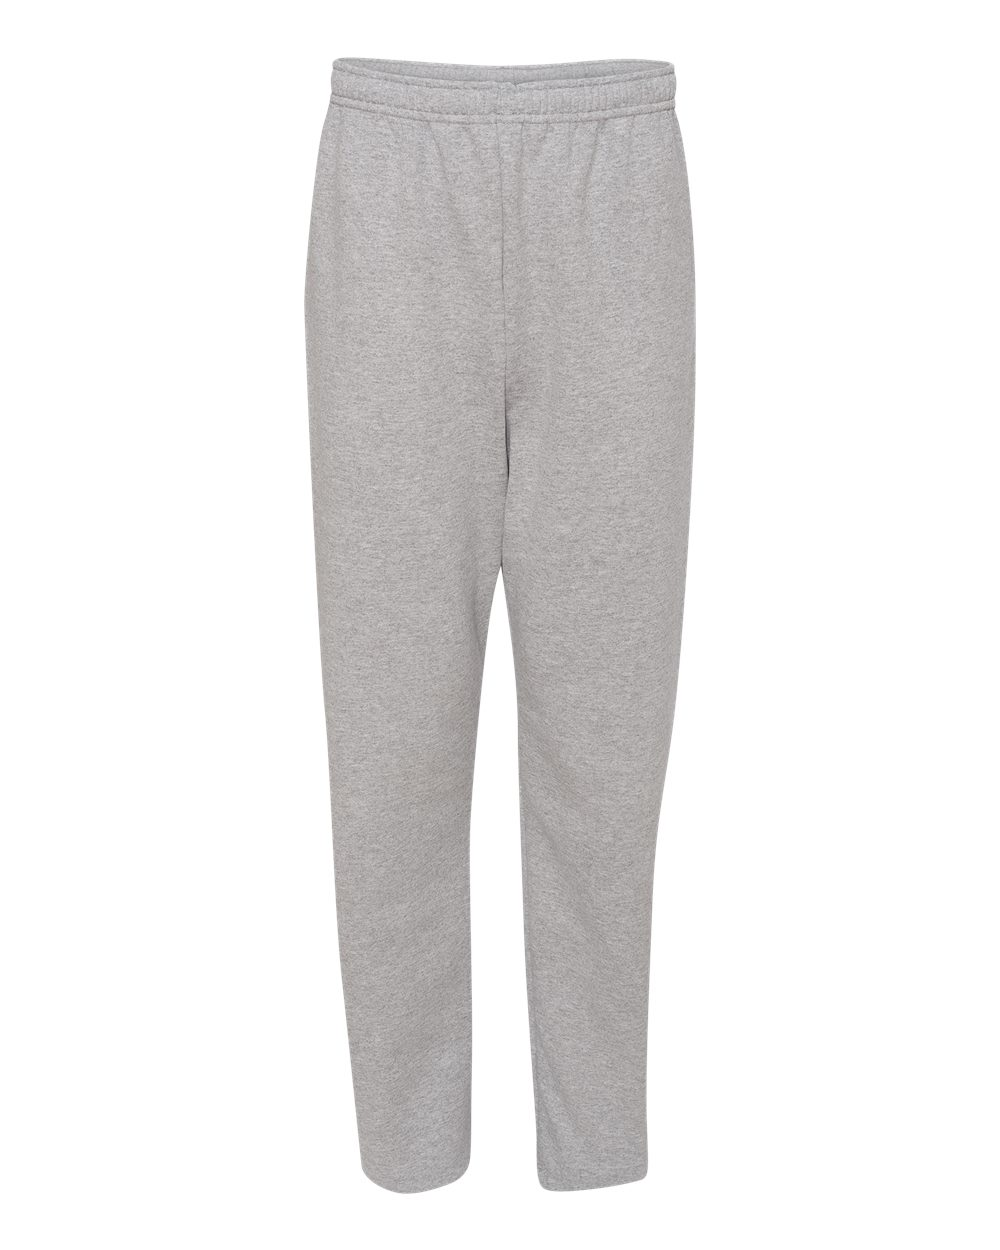 JERZEES-Mens-NuBlend-Open-Bottom-Sweatpants-with-Pockets-974MPR-up-to-3XL thumbnail 6